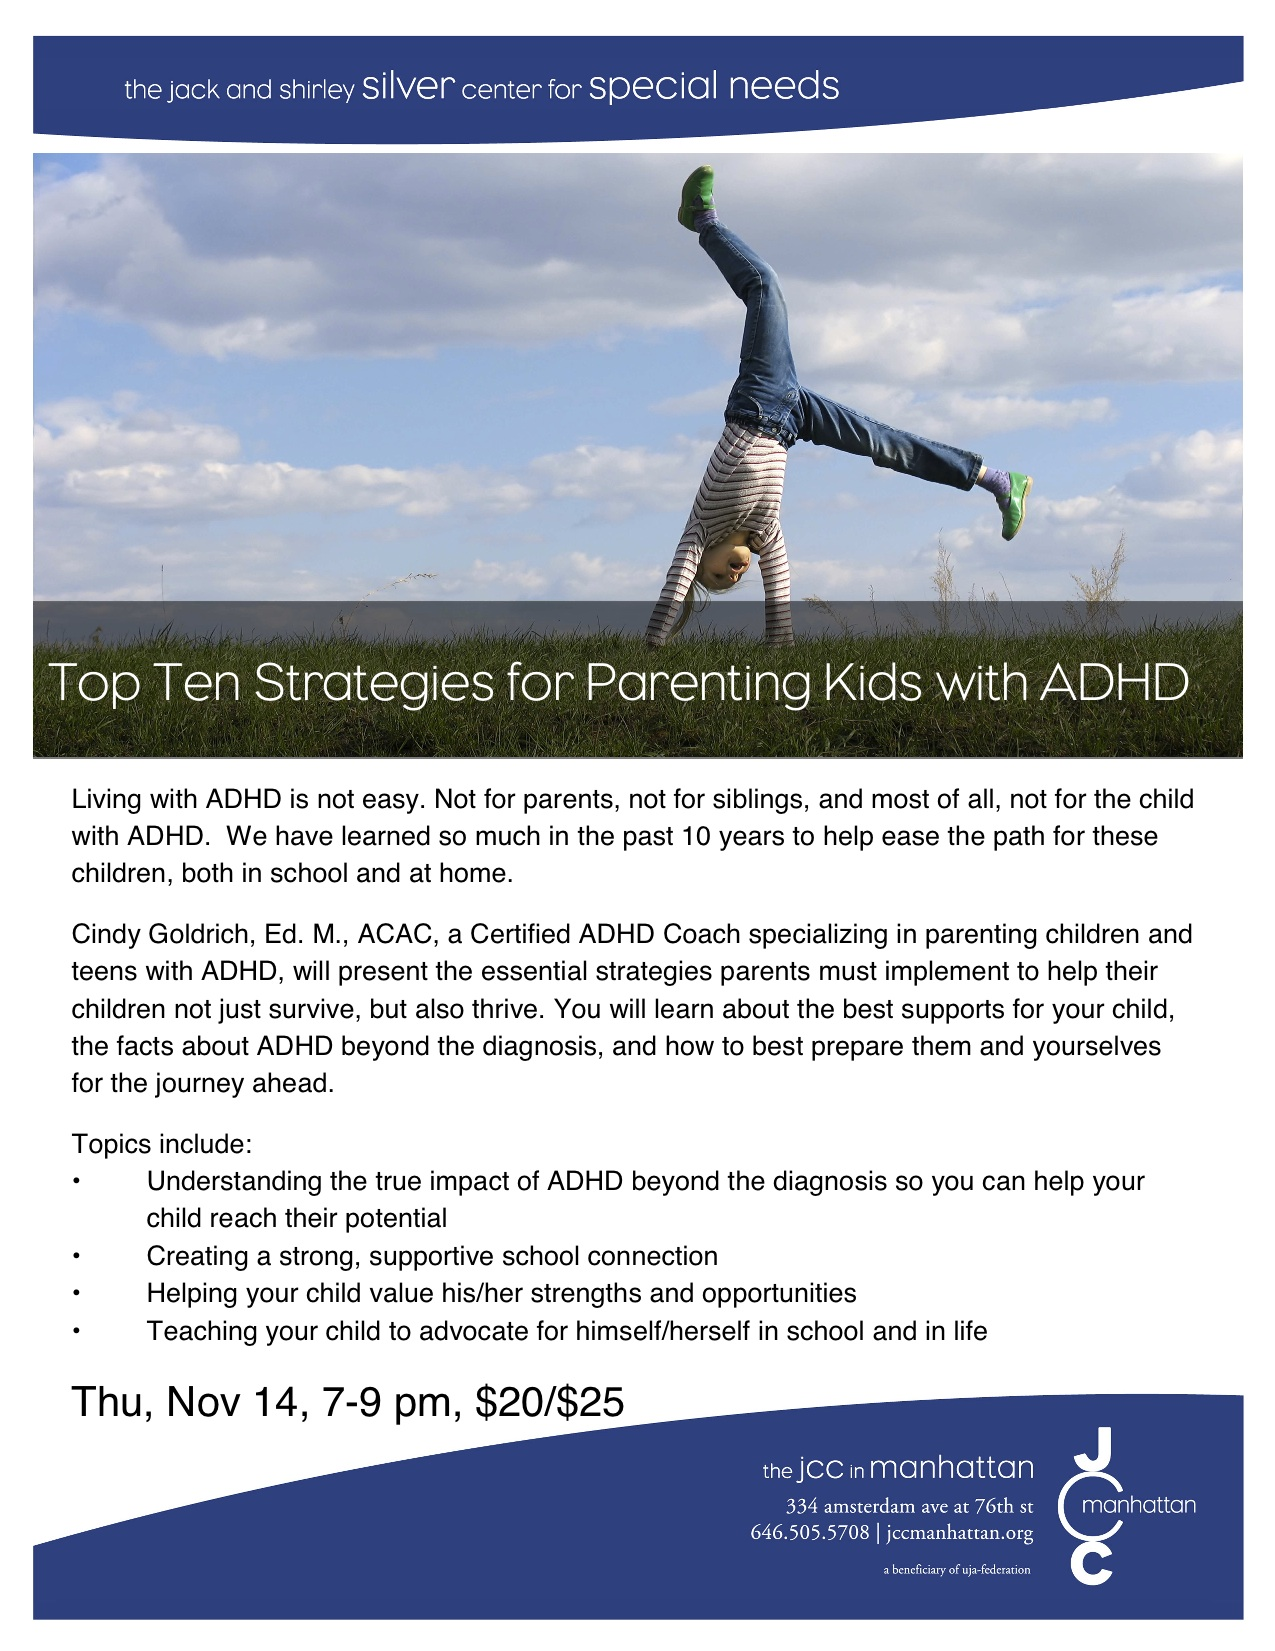 Parenting Kids with ADHD Flier (1)